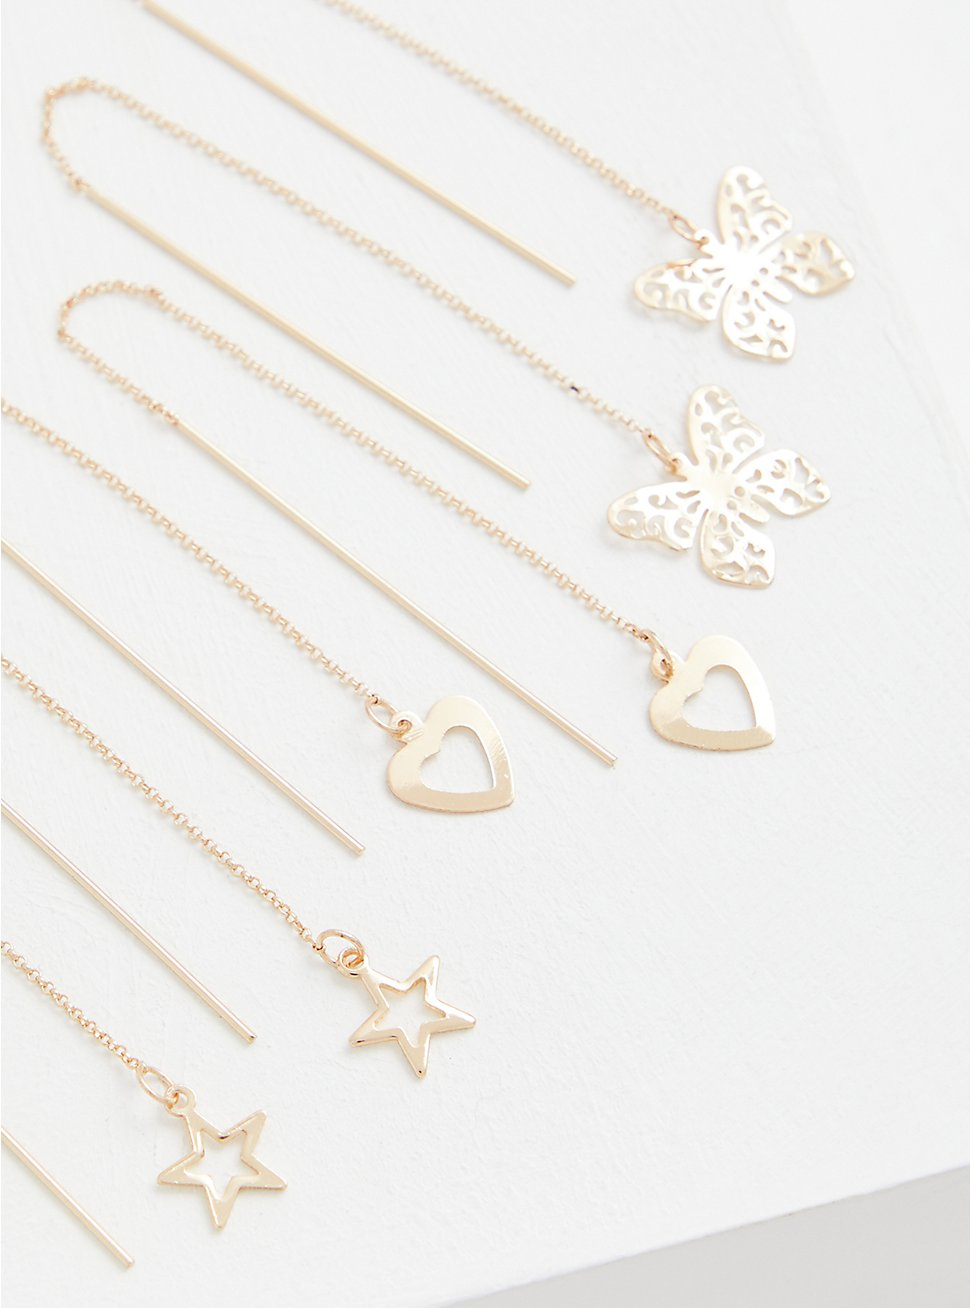 Gold-Tone Star Butterfly & Heart Threader Earrings Set - Set of 3, , hi-res